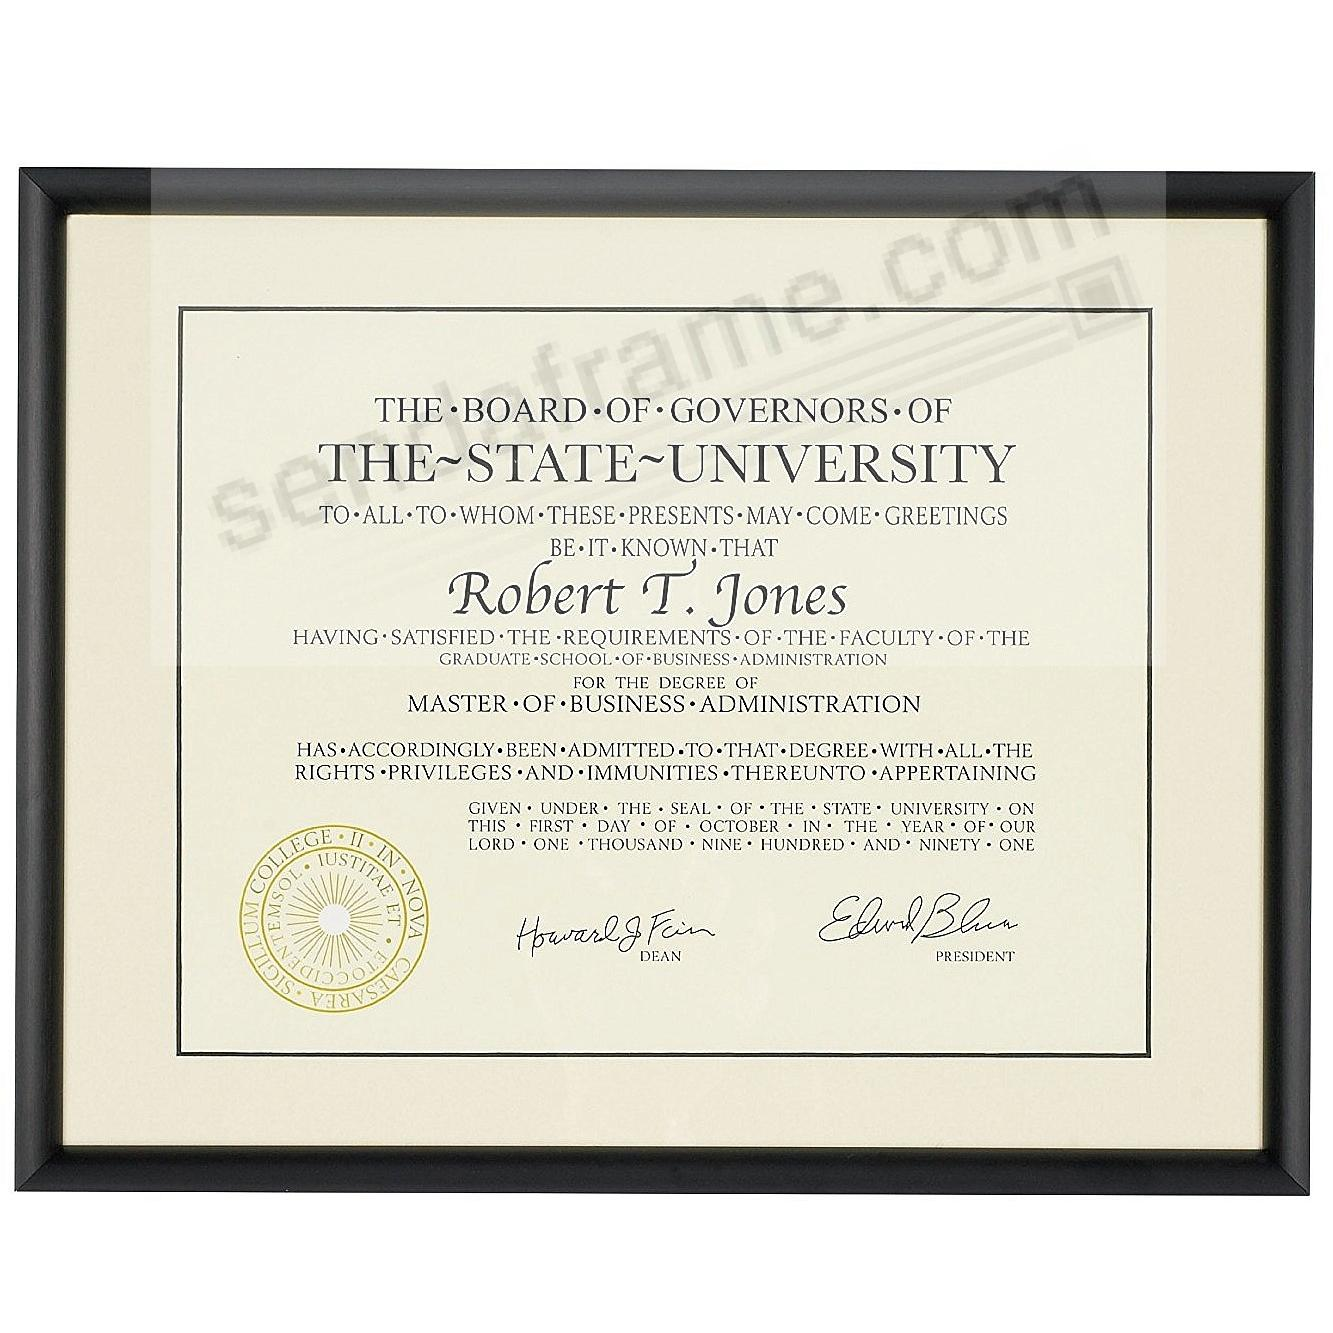 Satin-Black COSMOPOLITAN matted metallic frame 11x8½ / 14x11 from ARTCARE® by Nielsen®